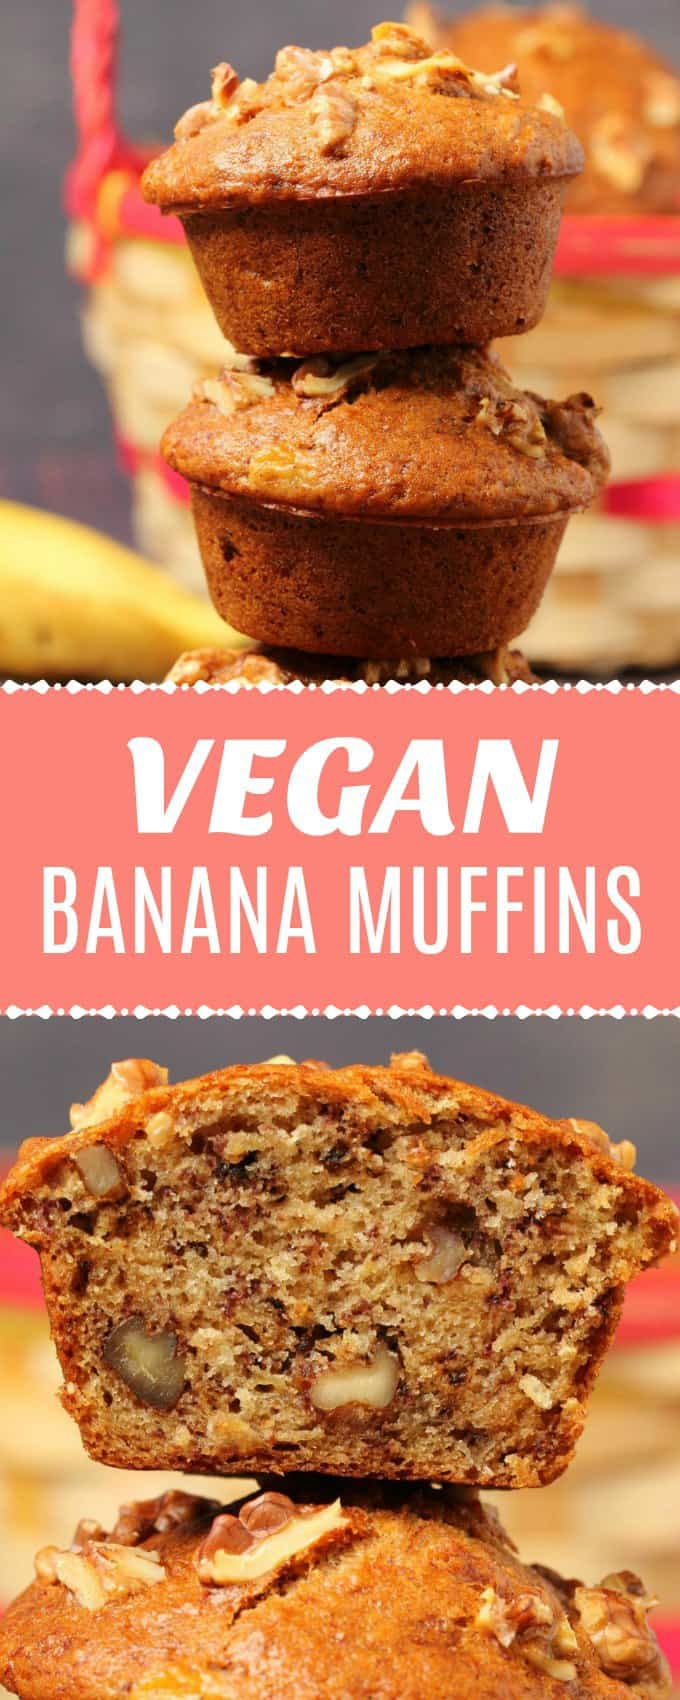 Perfectly moist vegan banana muffins with a gorgeous bakery-style domed top. Soft, fluffy and packed with banana flavor.#vegan #dairyfree   lovingitvegan.com